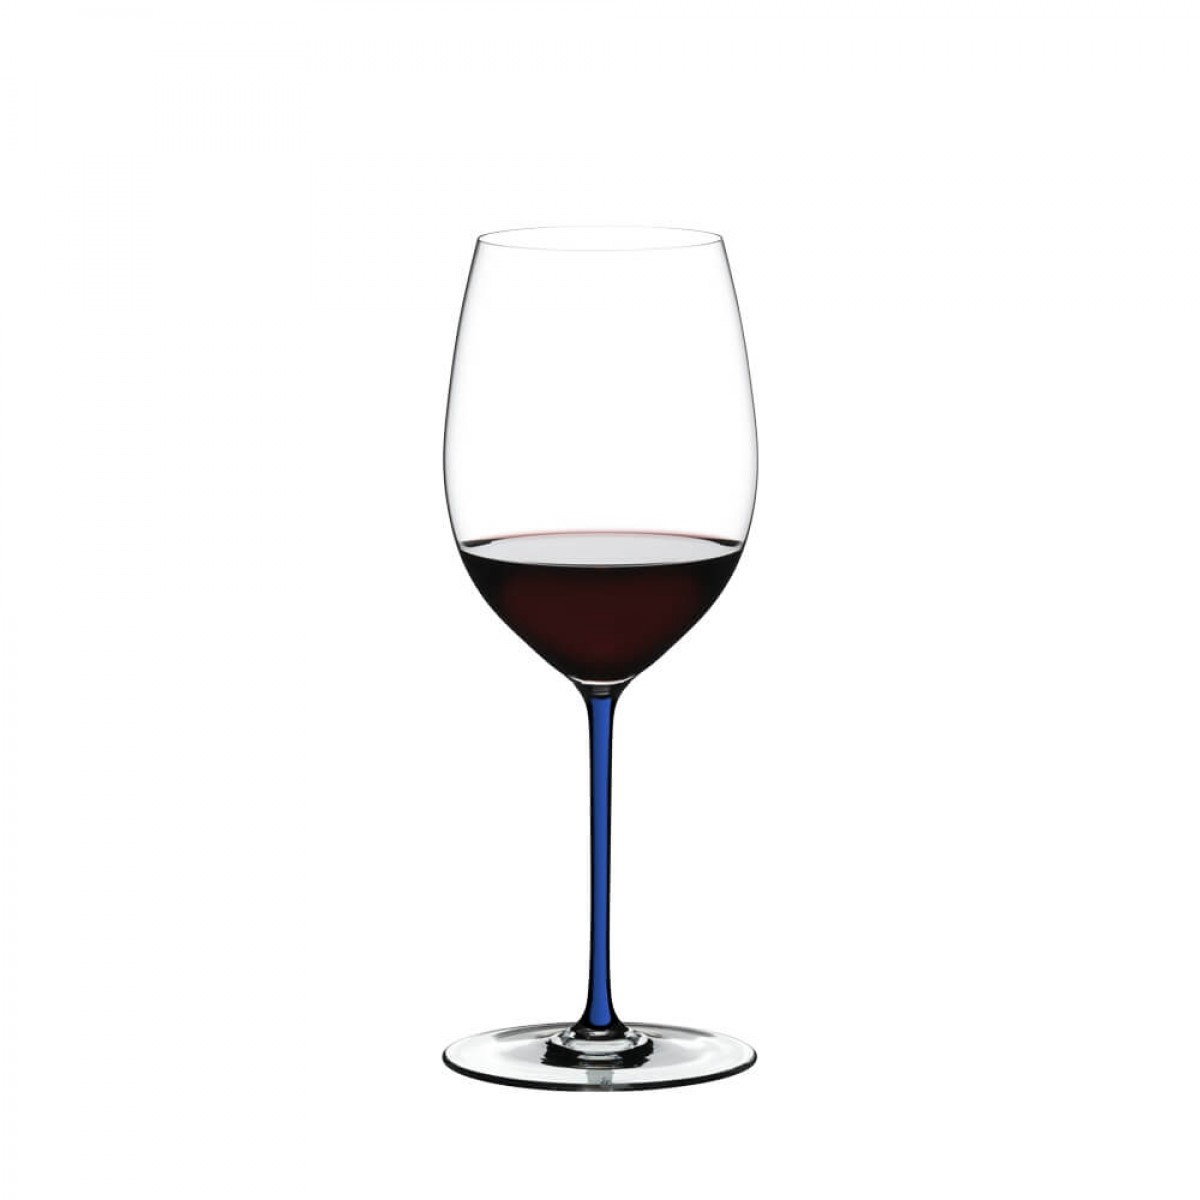 venetian glass bowls vases of fatto a mano cabernet dark blue 4900 0d type glasses riedel inside fatto a mano cabernet dark blue 4900 0d